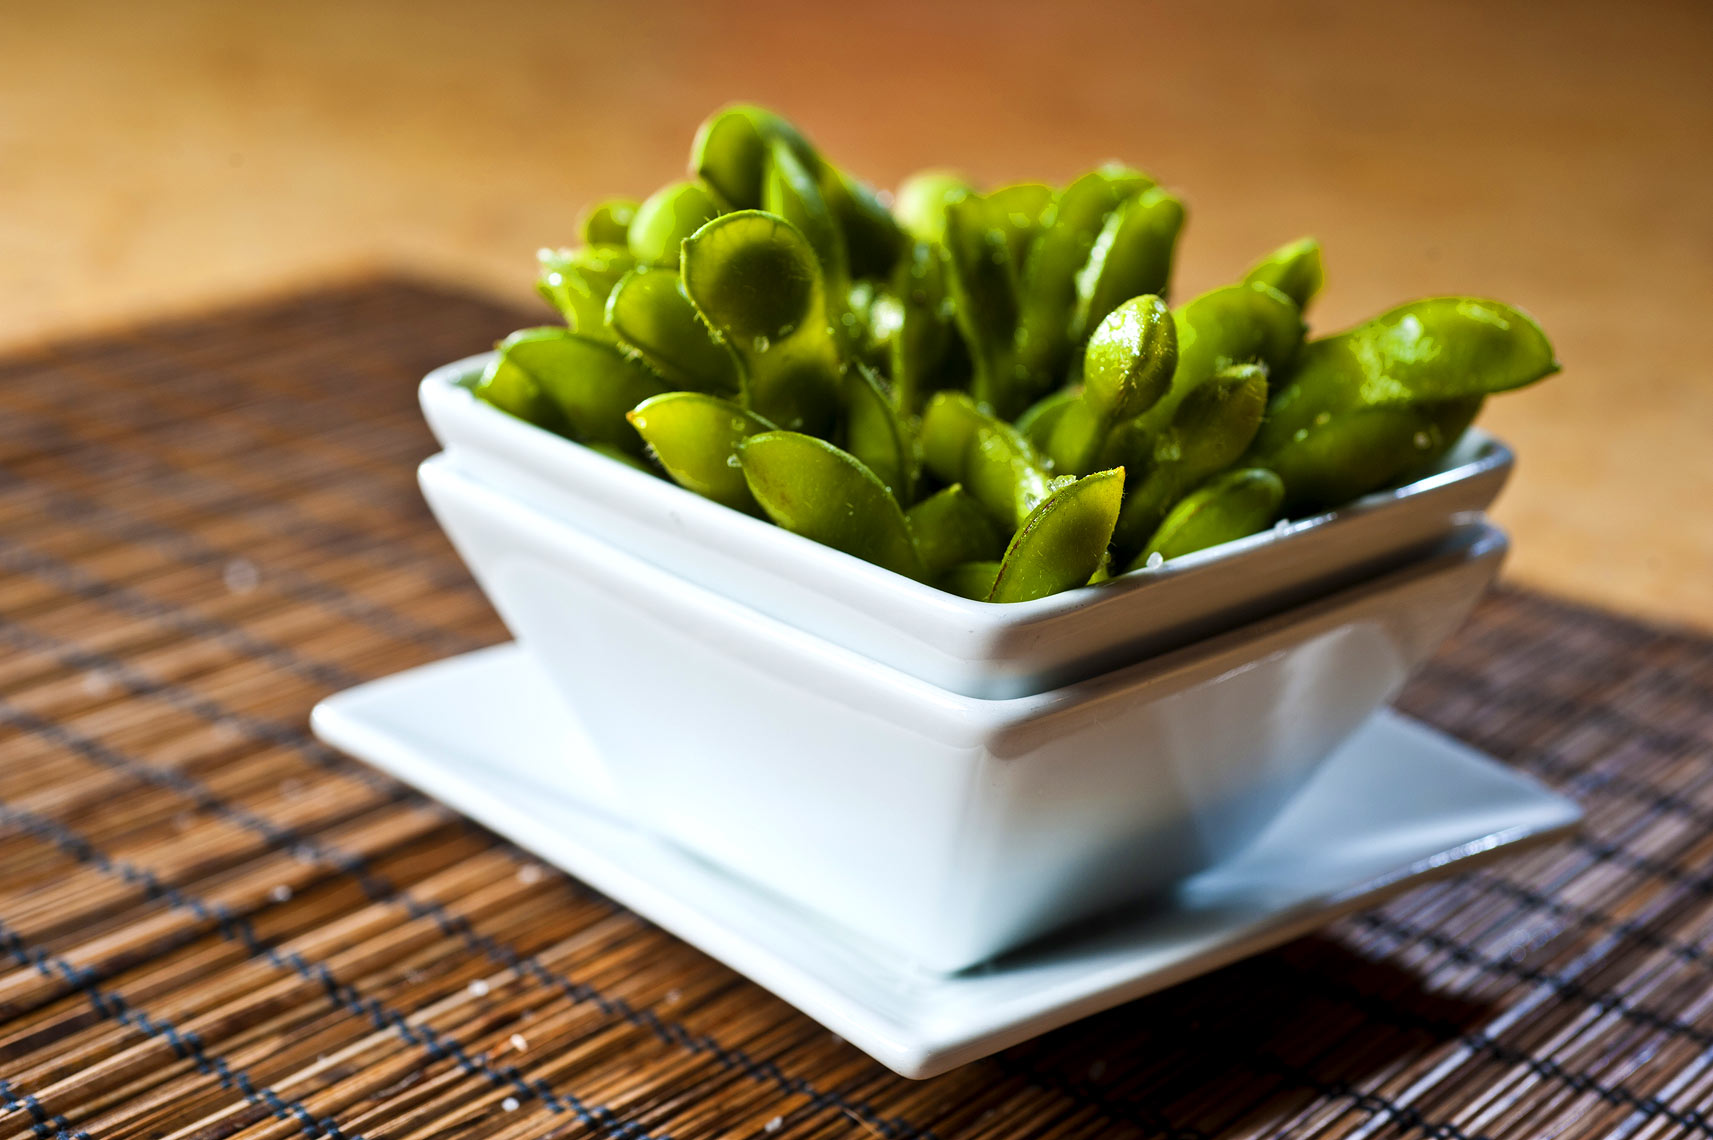 Raleigh food photography Bryan Regan Kanki edamame